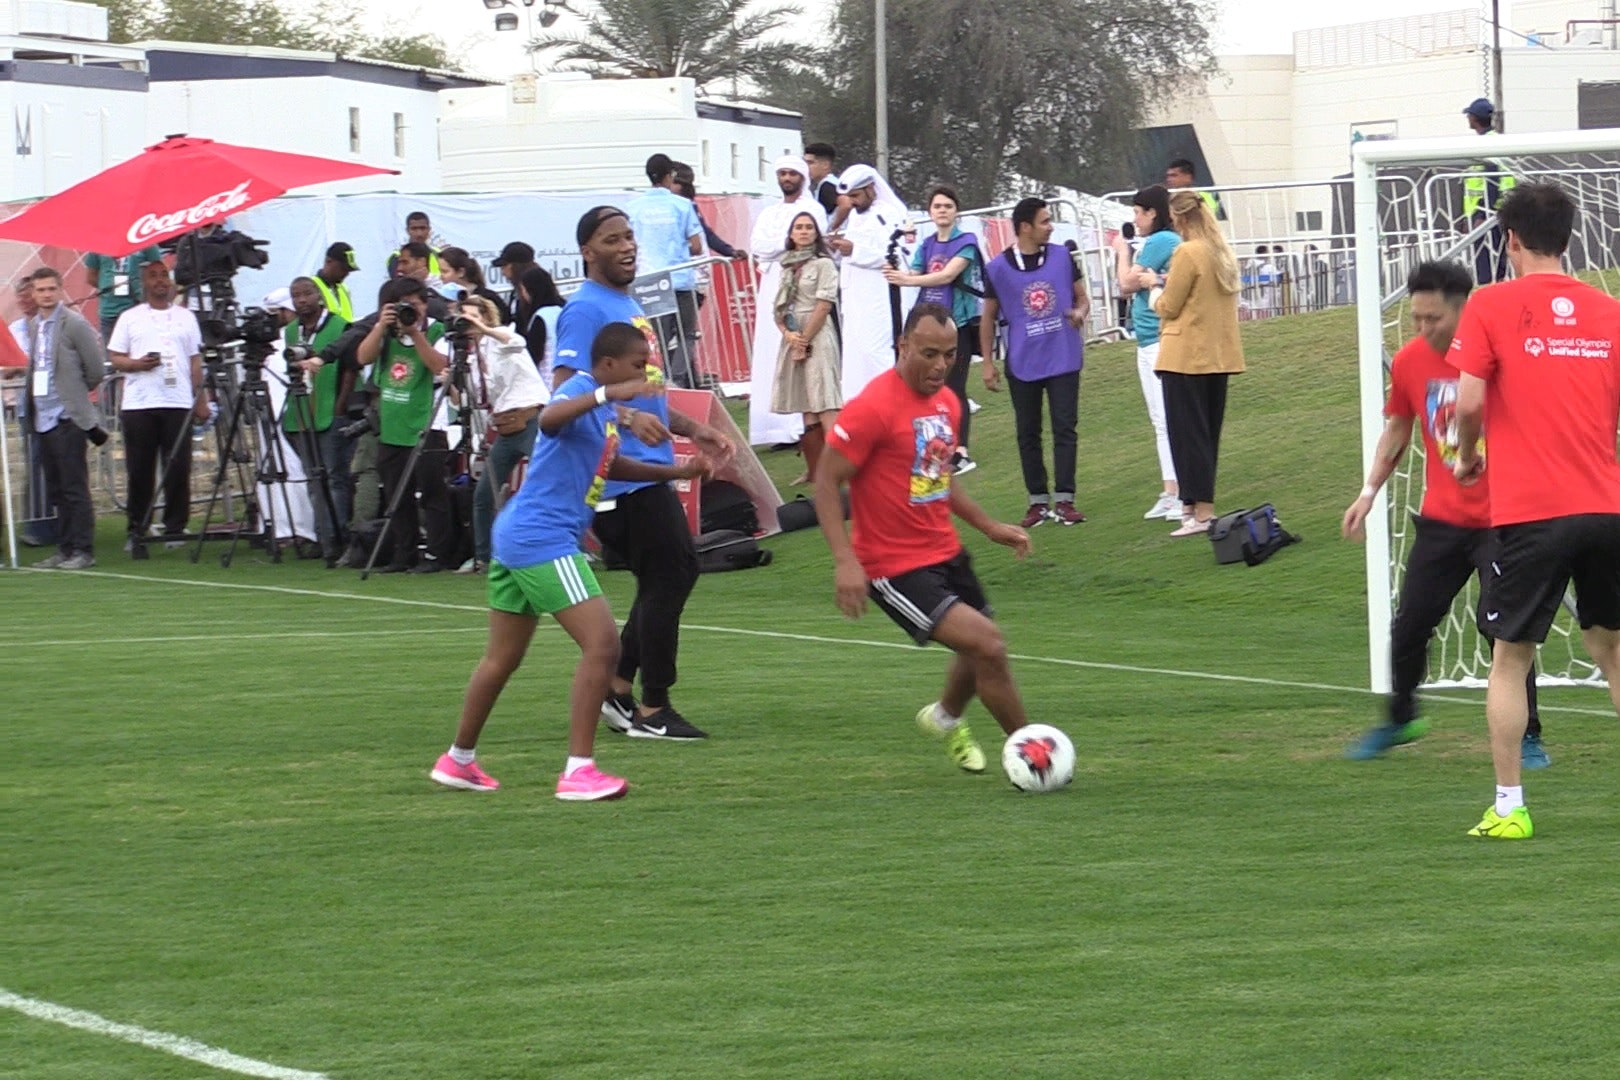 Didier Drogba and Cafu participate in a Unified Sports Experience in Abu Dhabi